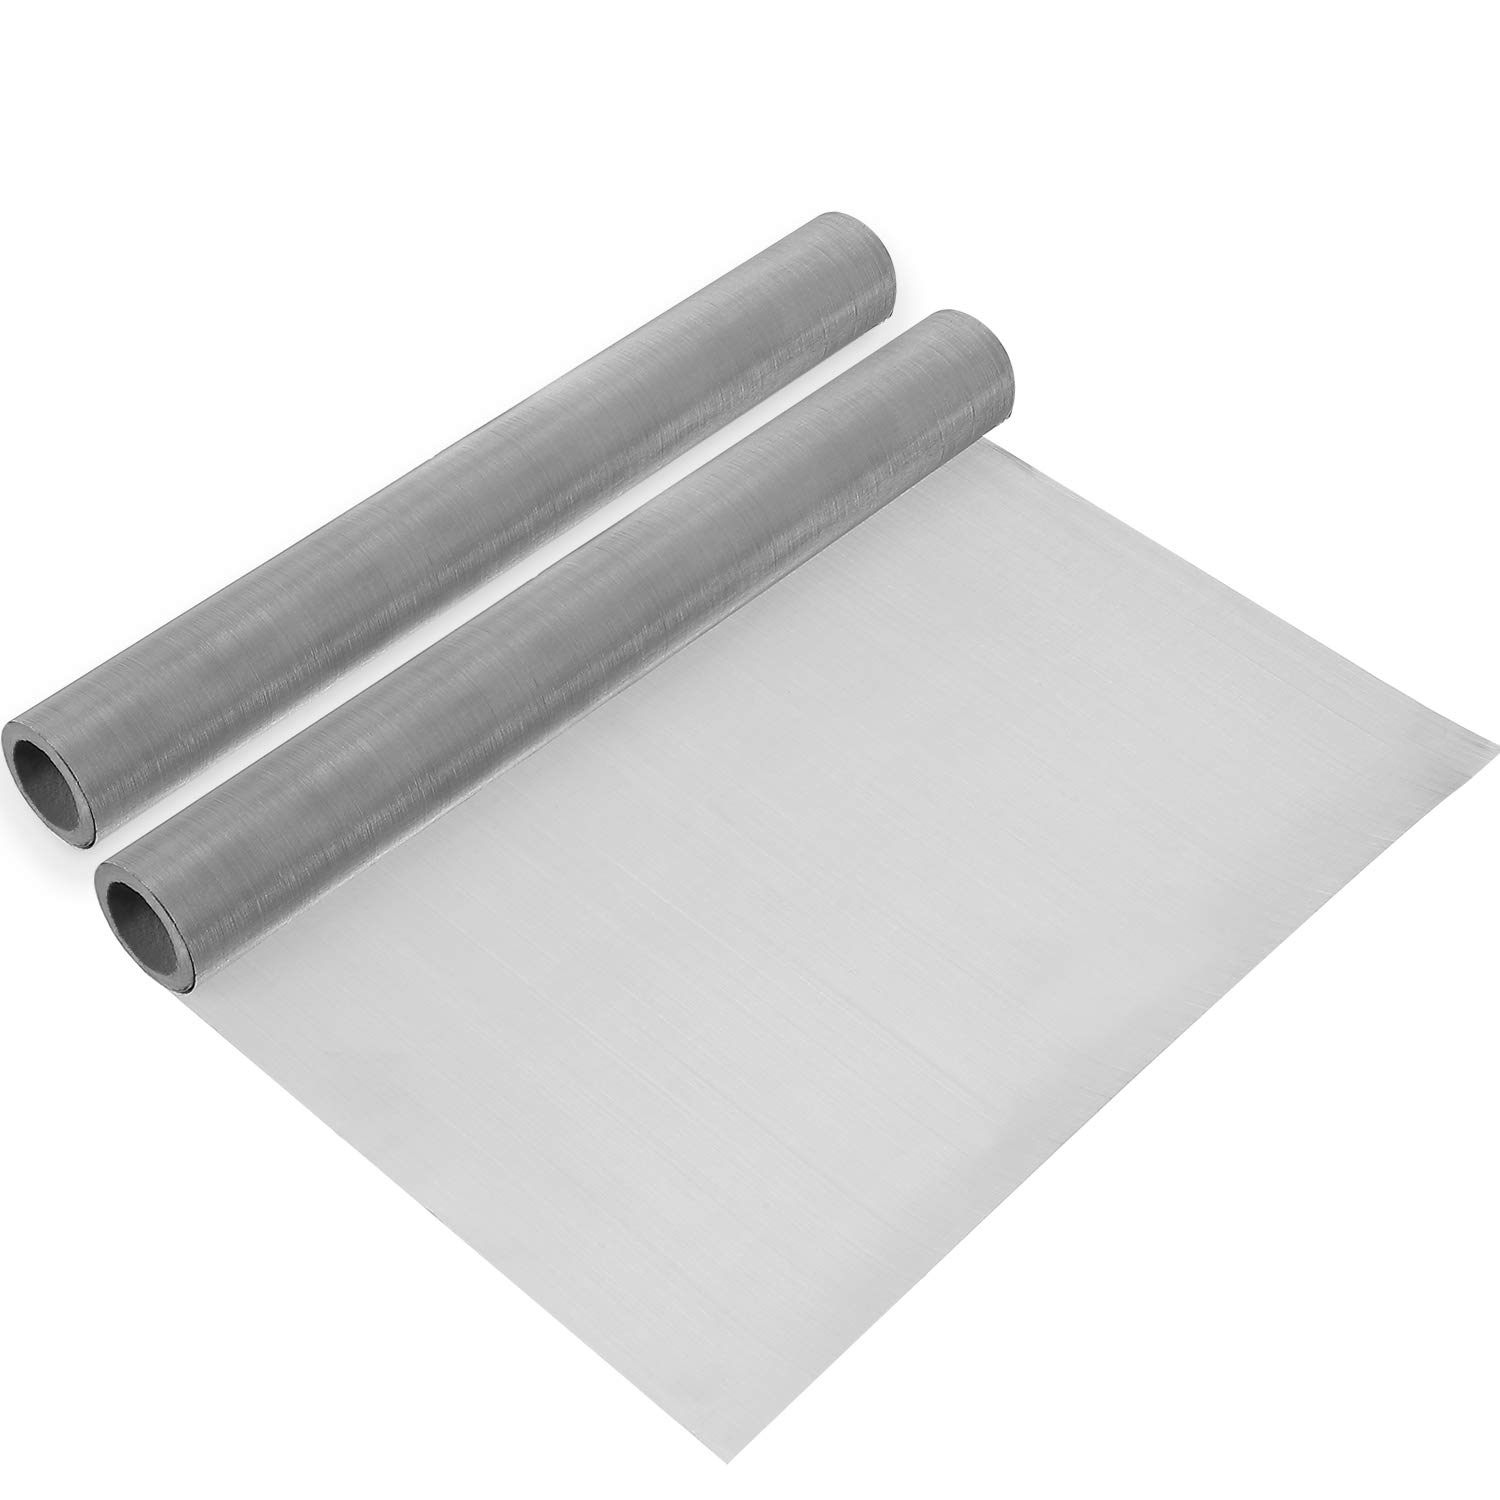 2 Packs 304 Stainless Steel Woven Wire  120 Mesh Fine Screen Mesh Steel Woven Mesh for Filter Mesh, Filtration Cloth, 11.8 x 39.3 Inch by SATINIOR